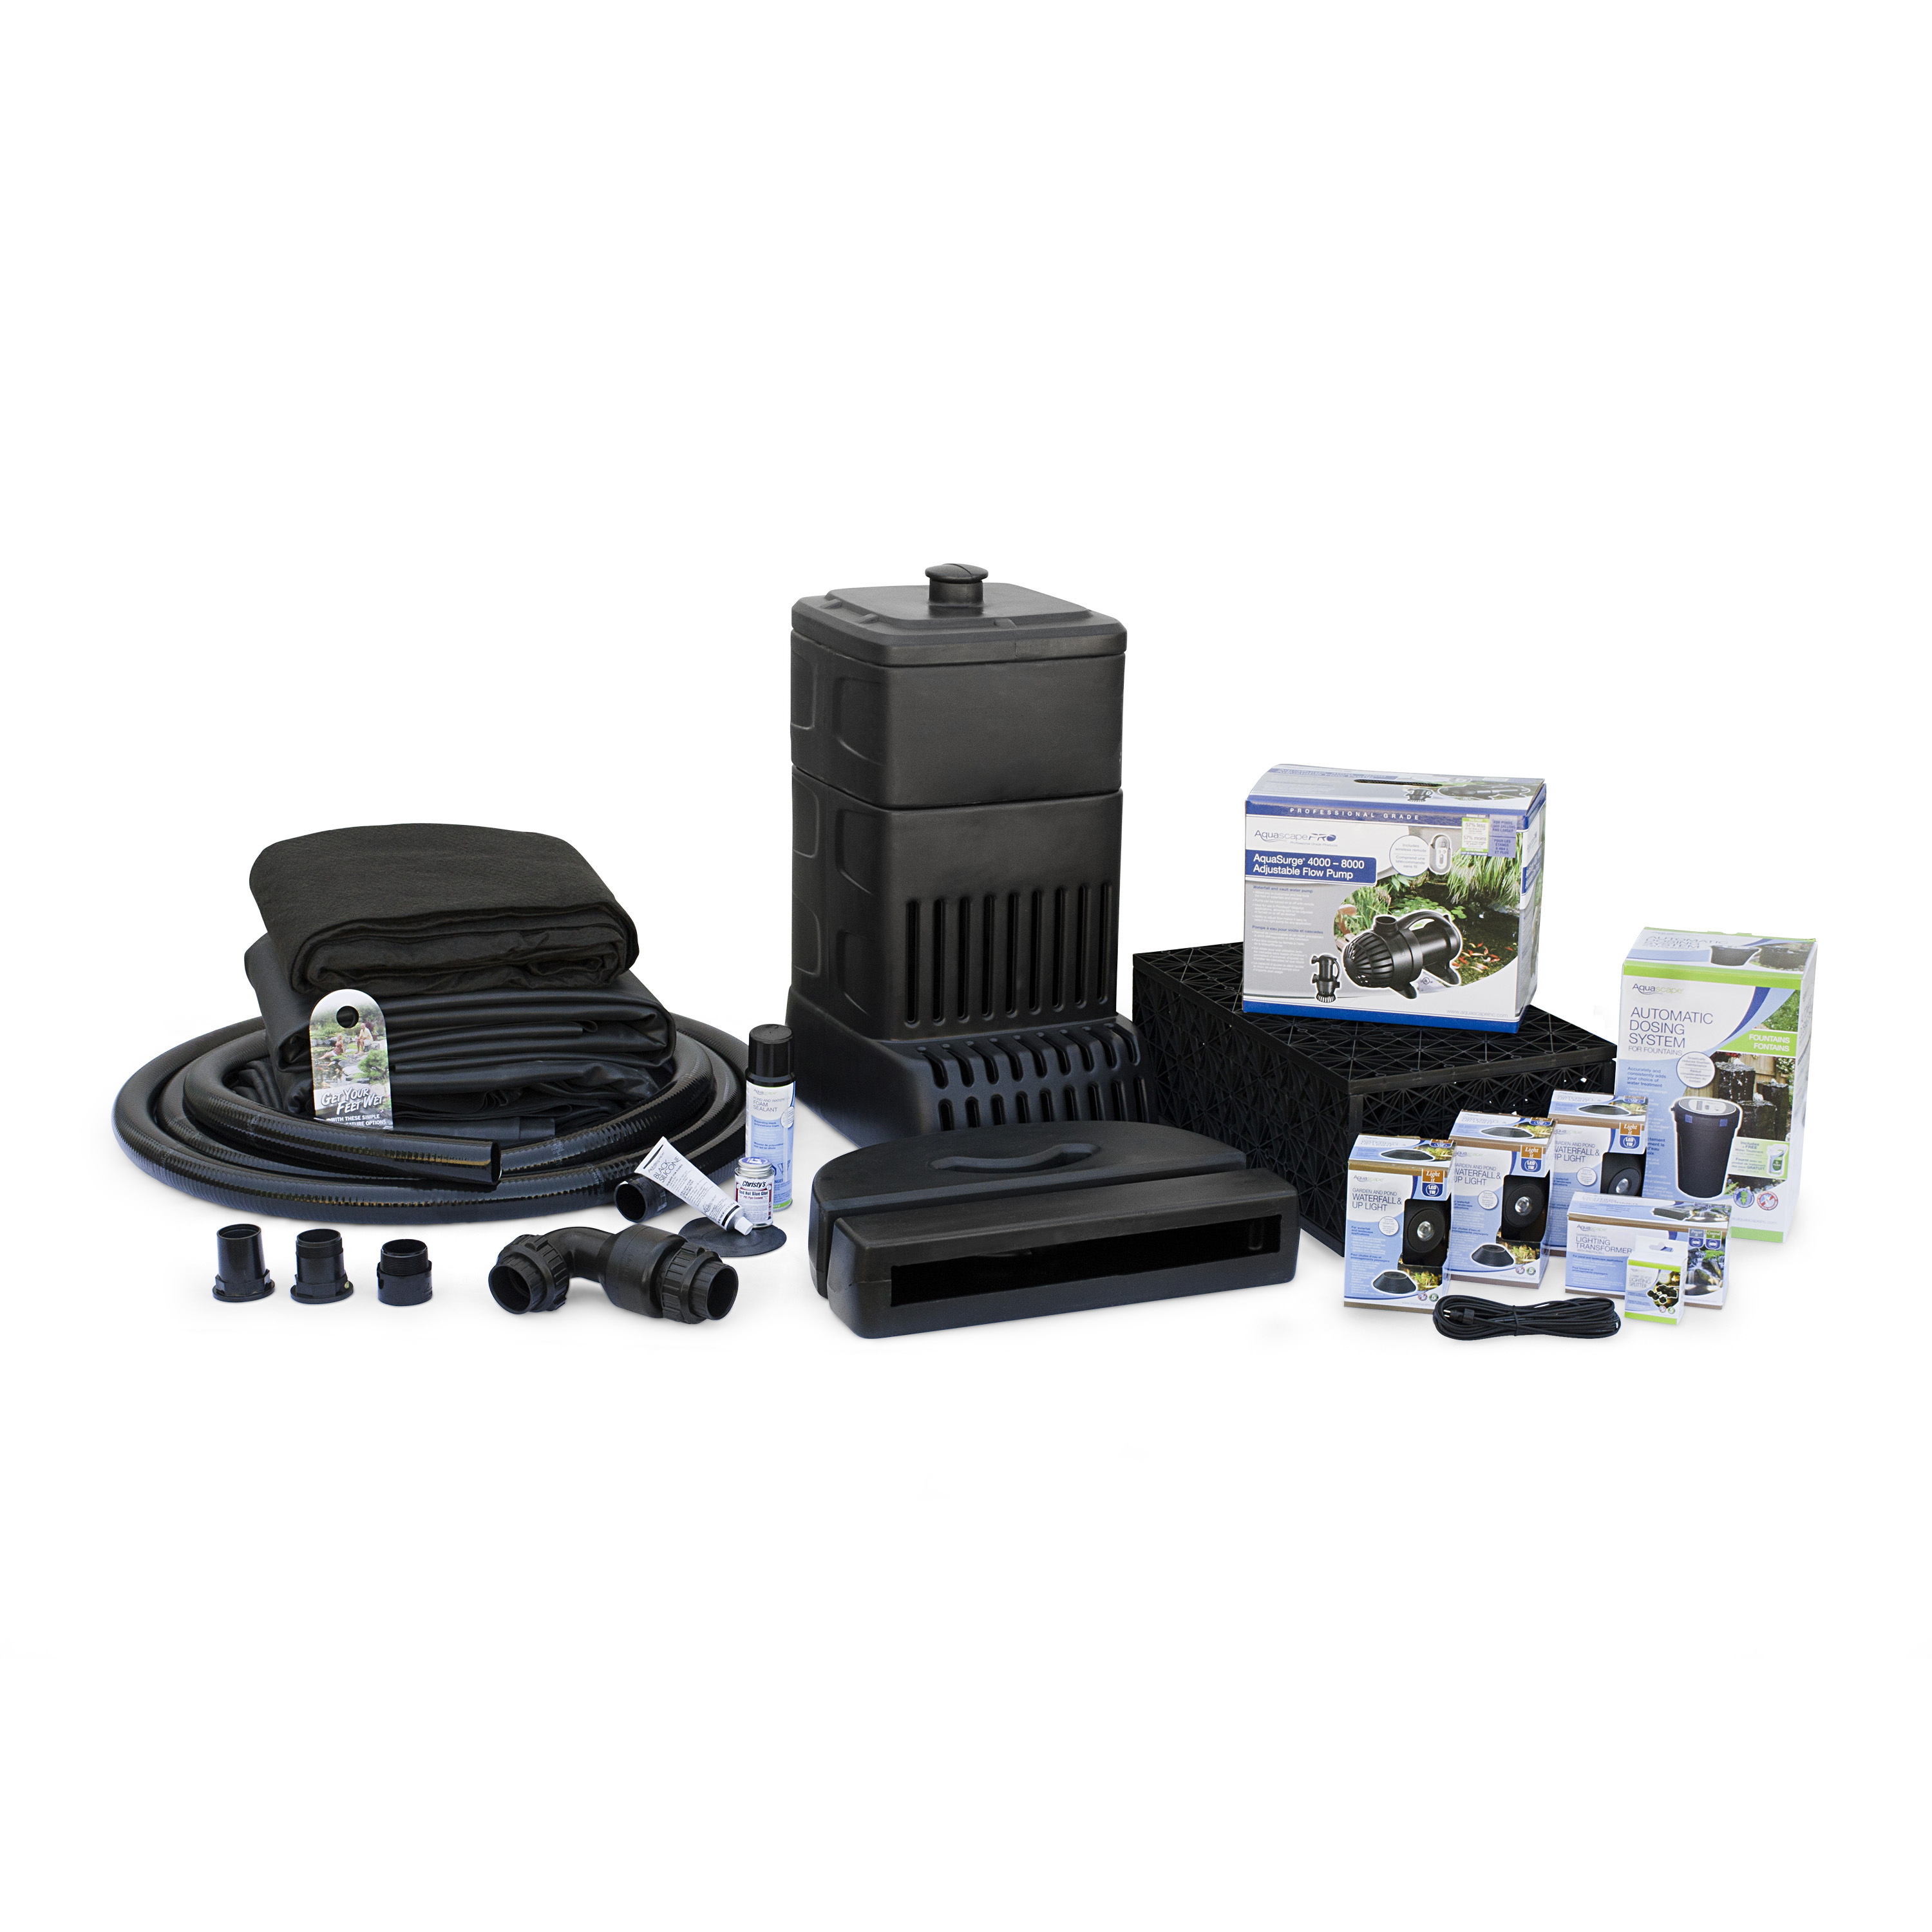 Large Pondless Waterfall Kit 26' Stream with AquaSurge 4000-8000 Pond Pump